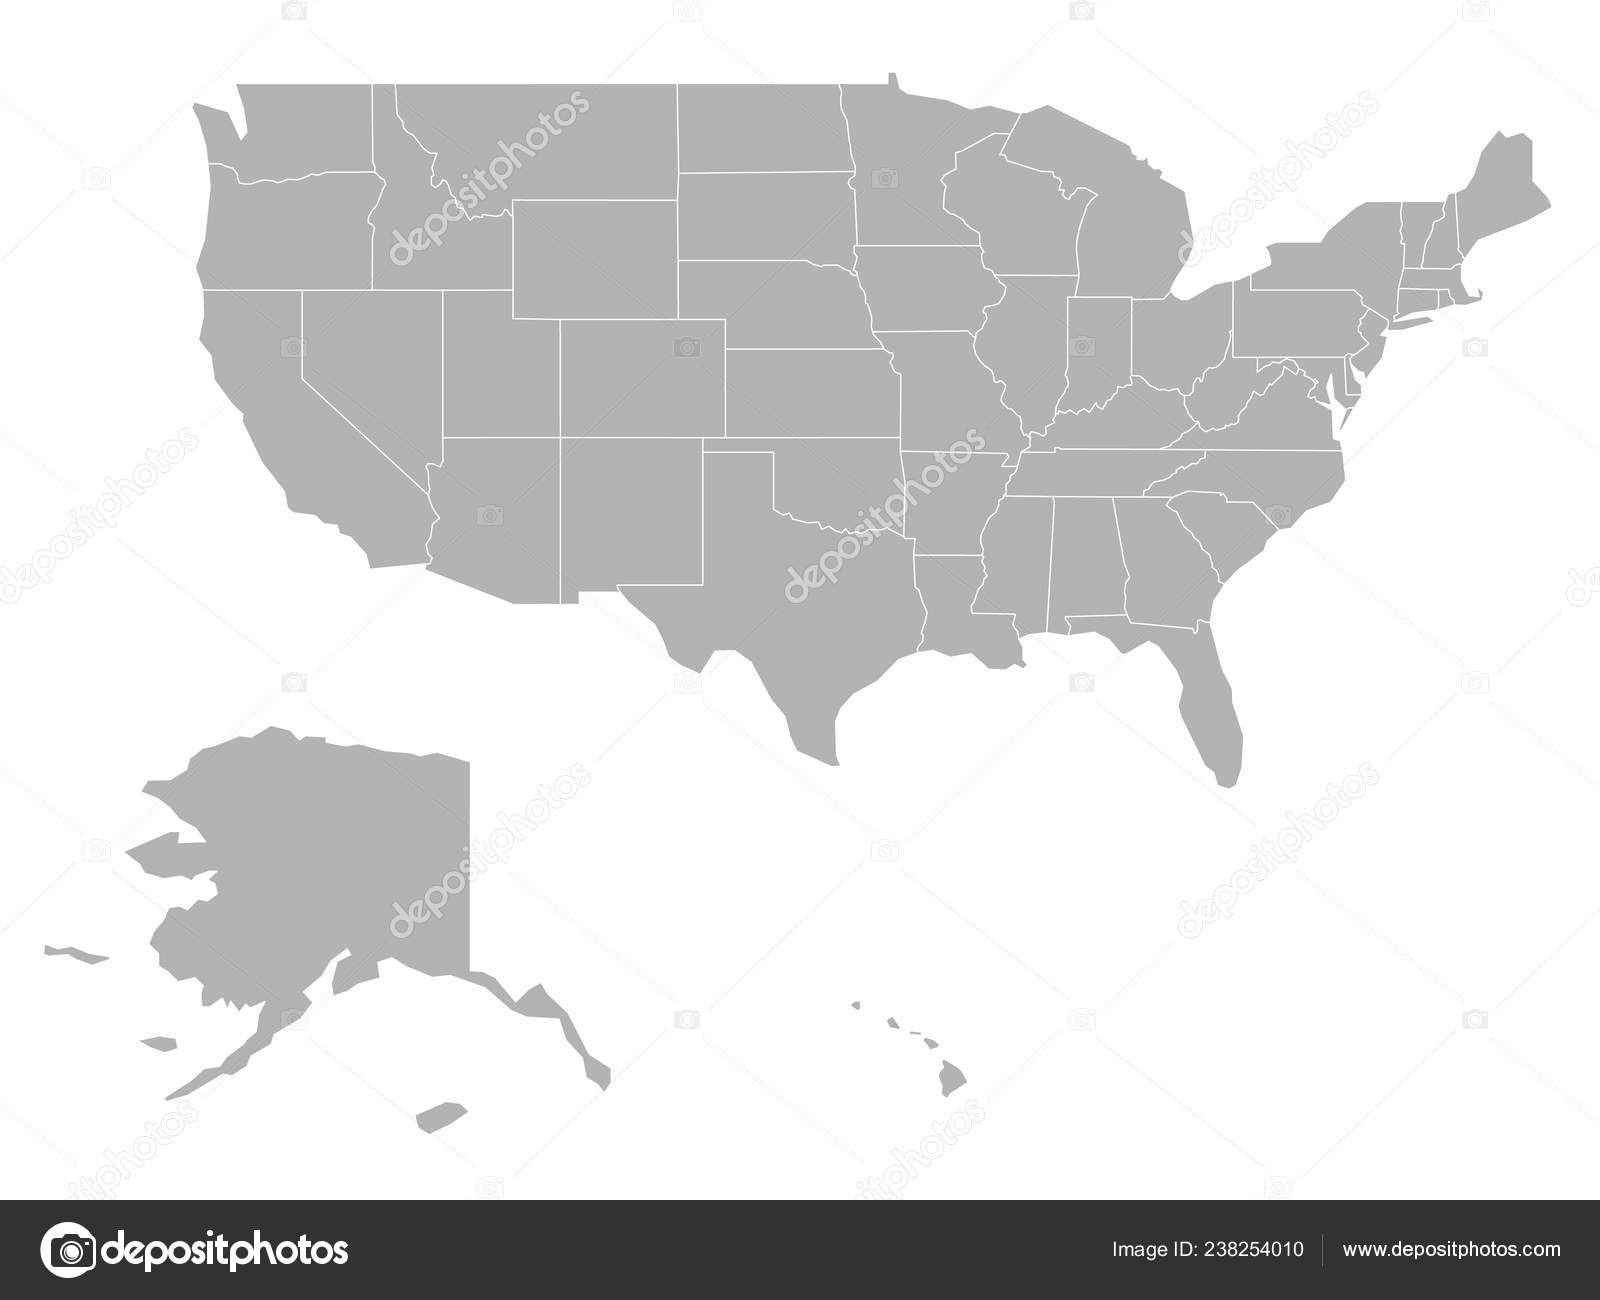 Blank map of United States of America - USA. Simplified dark ... on us states of america, usa map guide, usa map europe, usa maps united states, usa map vacation, usa map paint, usa map houston, usa map new zealand, usa united states of america, usa flag of america, usa map modern, usa map black, usa map turkey, usa map online, usa south america, star of america, home of america, weather of america, usa usa map, usa map georgia,